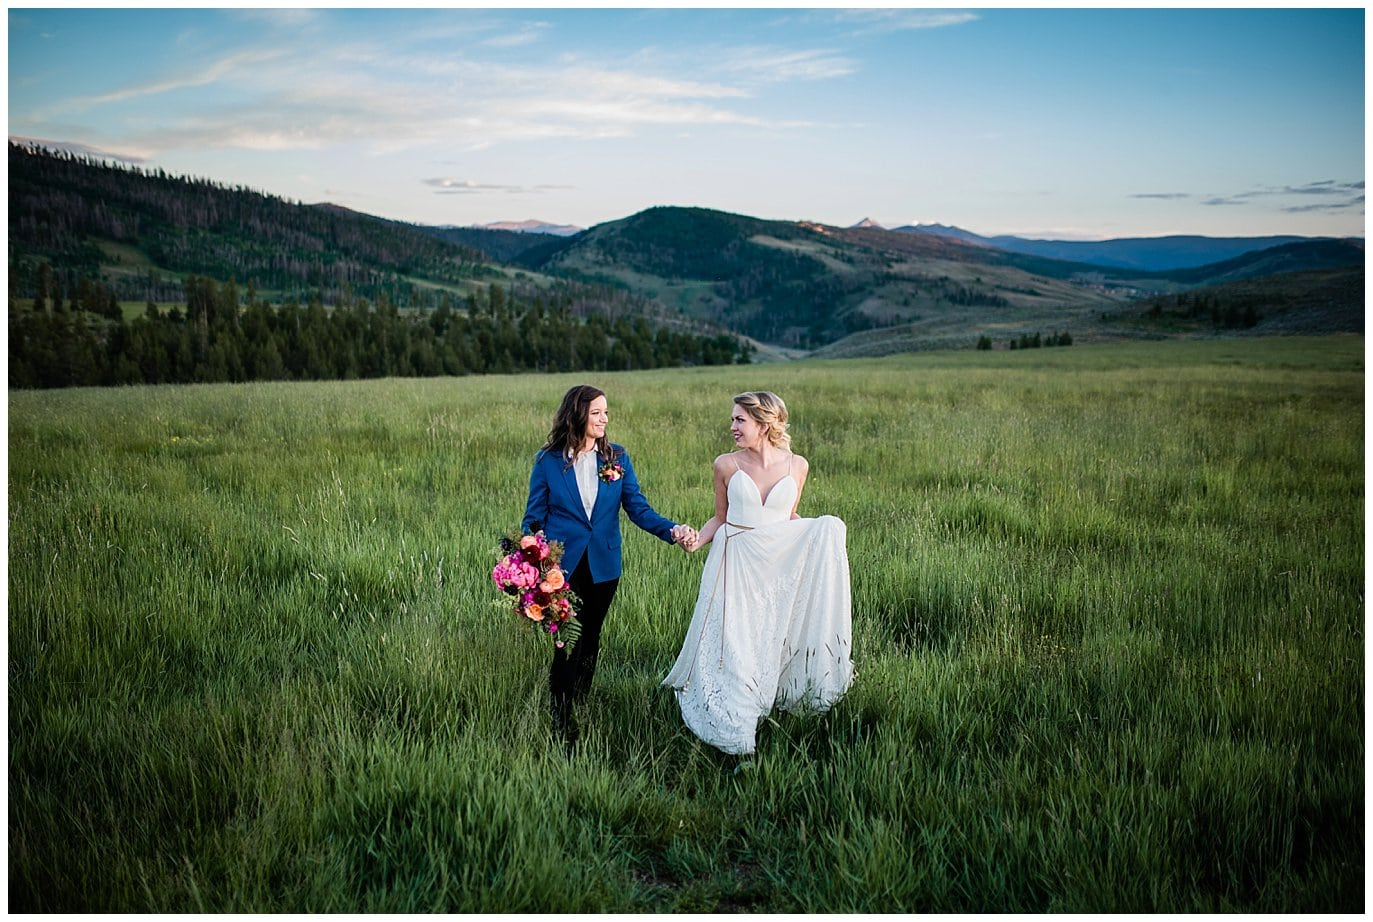 The Best Colorado Wedding Vendors include The Olive and Poppy and a & be bridal shop at Strawberry Creek Ranch in Granby Colorado by Colorado Wedding Photographer Jennie Crate Photographer